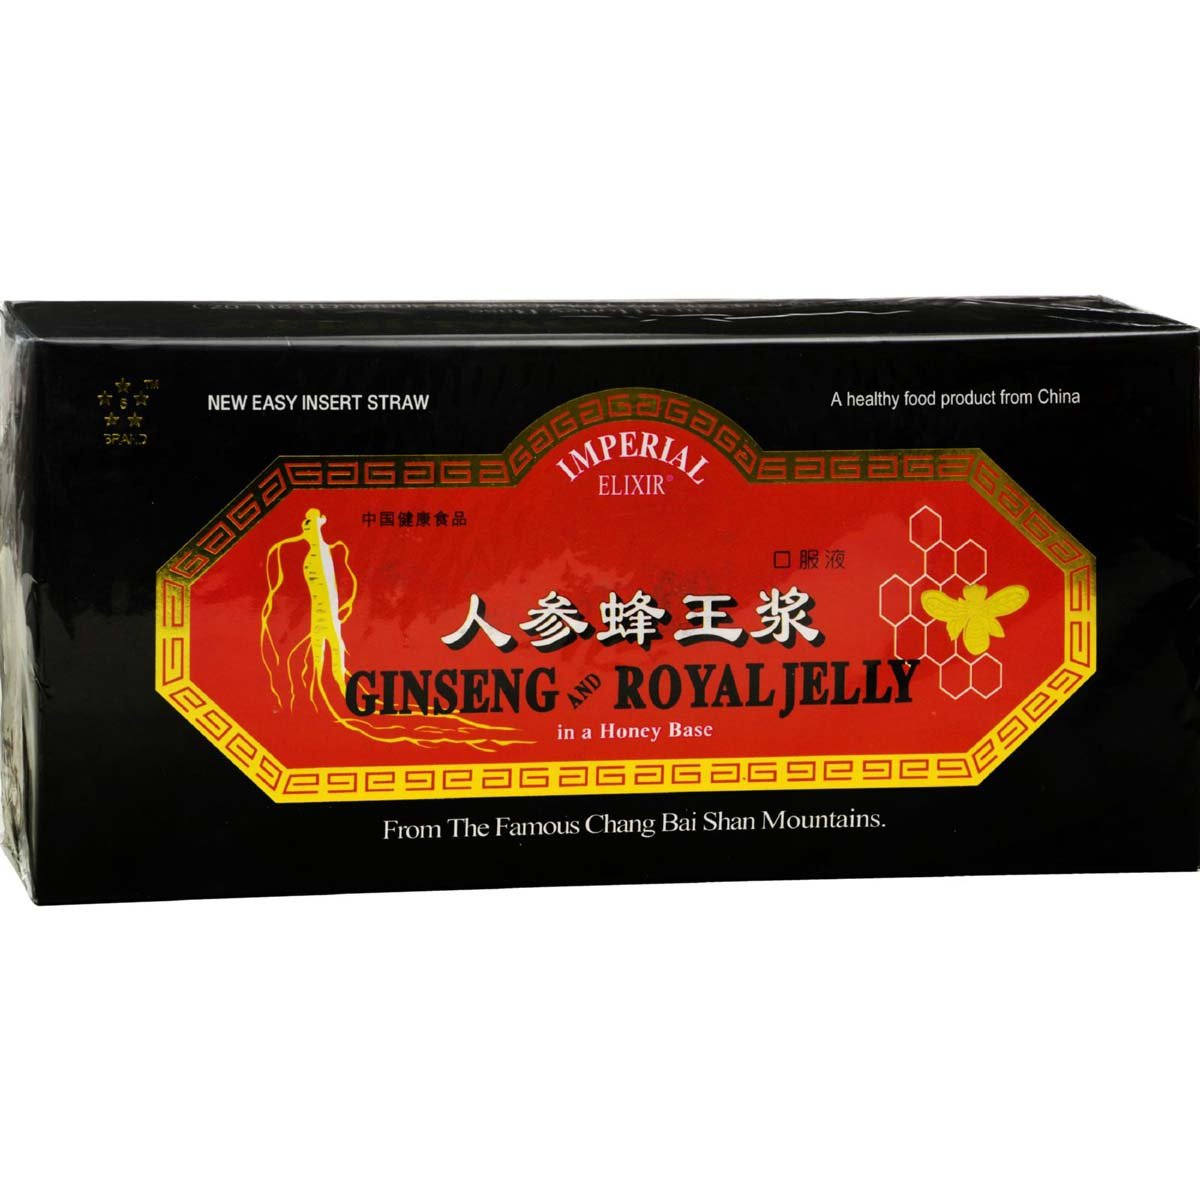 Imperial Elixir / Ginseng Company Ginseng and Royal Jelly, 30X10 Cc: Amazon.es: Salud y cuidado personal